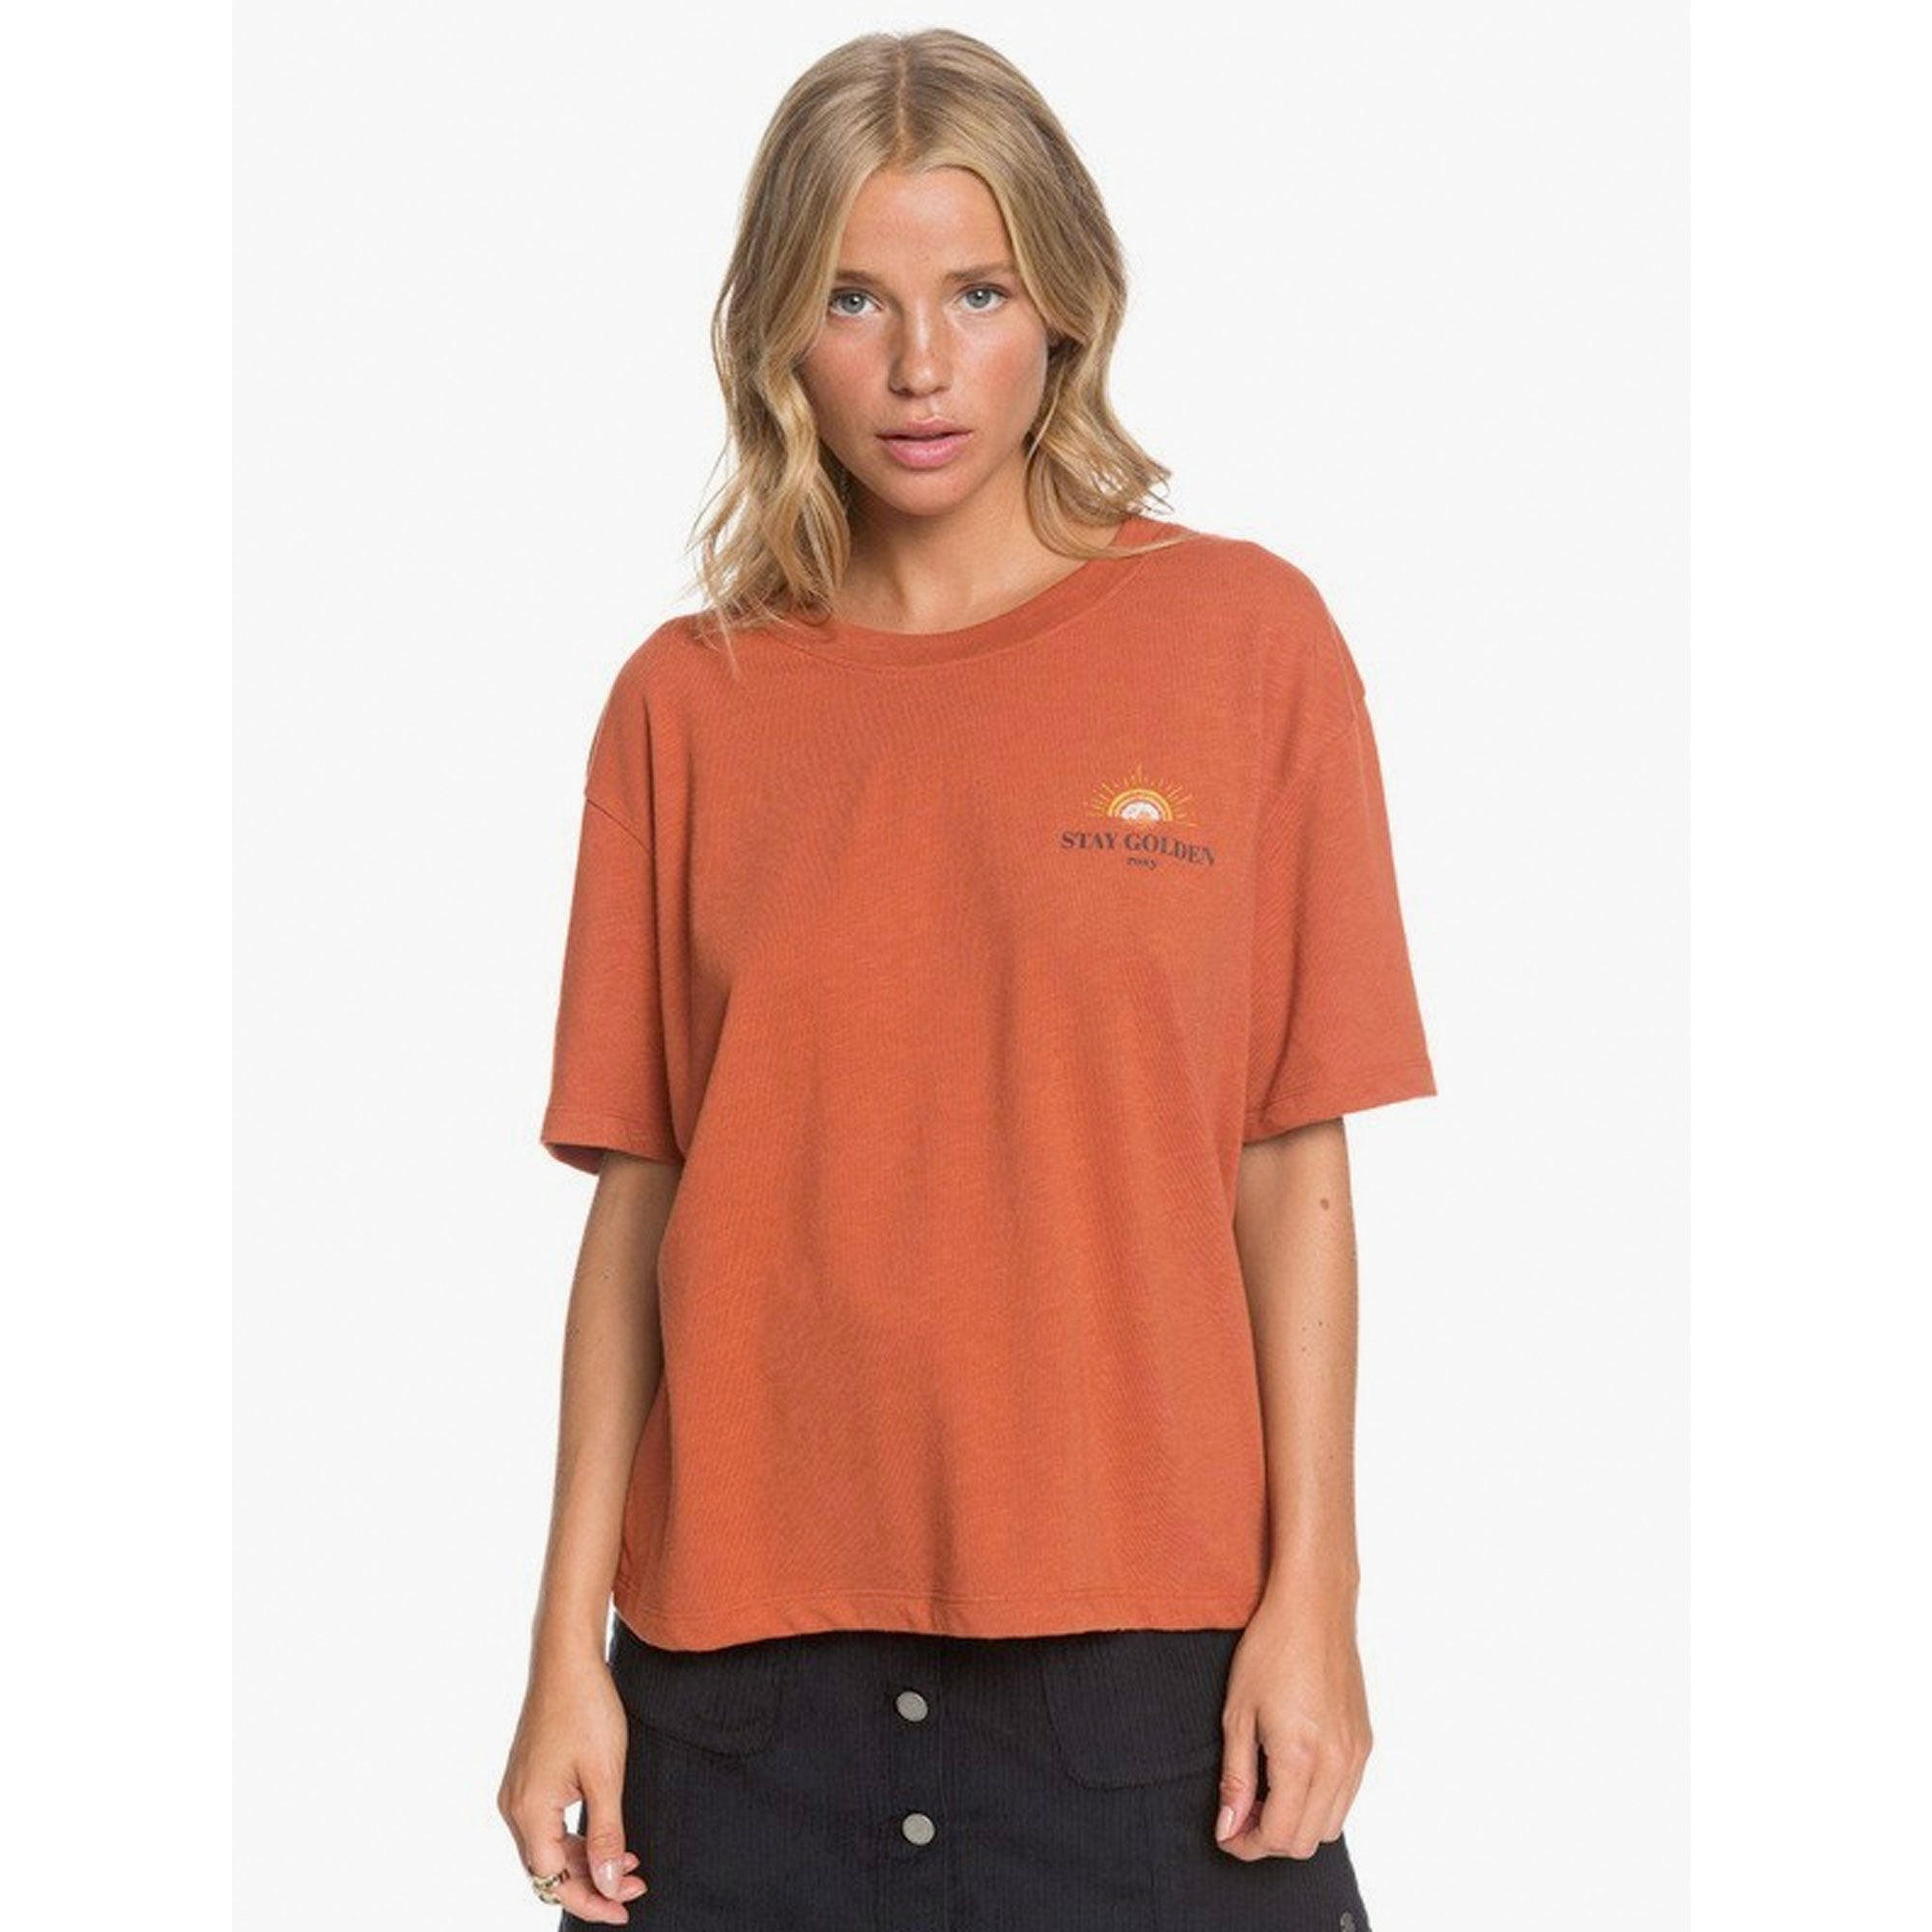 Roxy Sweetest B Women's S/S T-Shirt